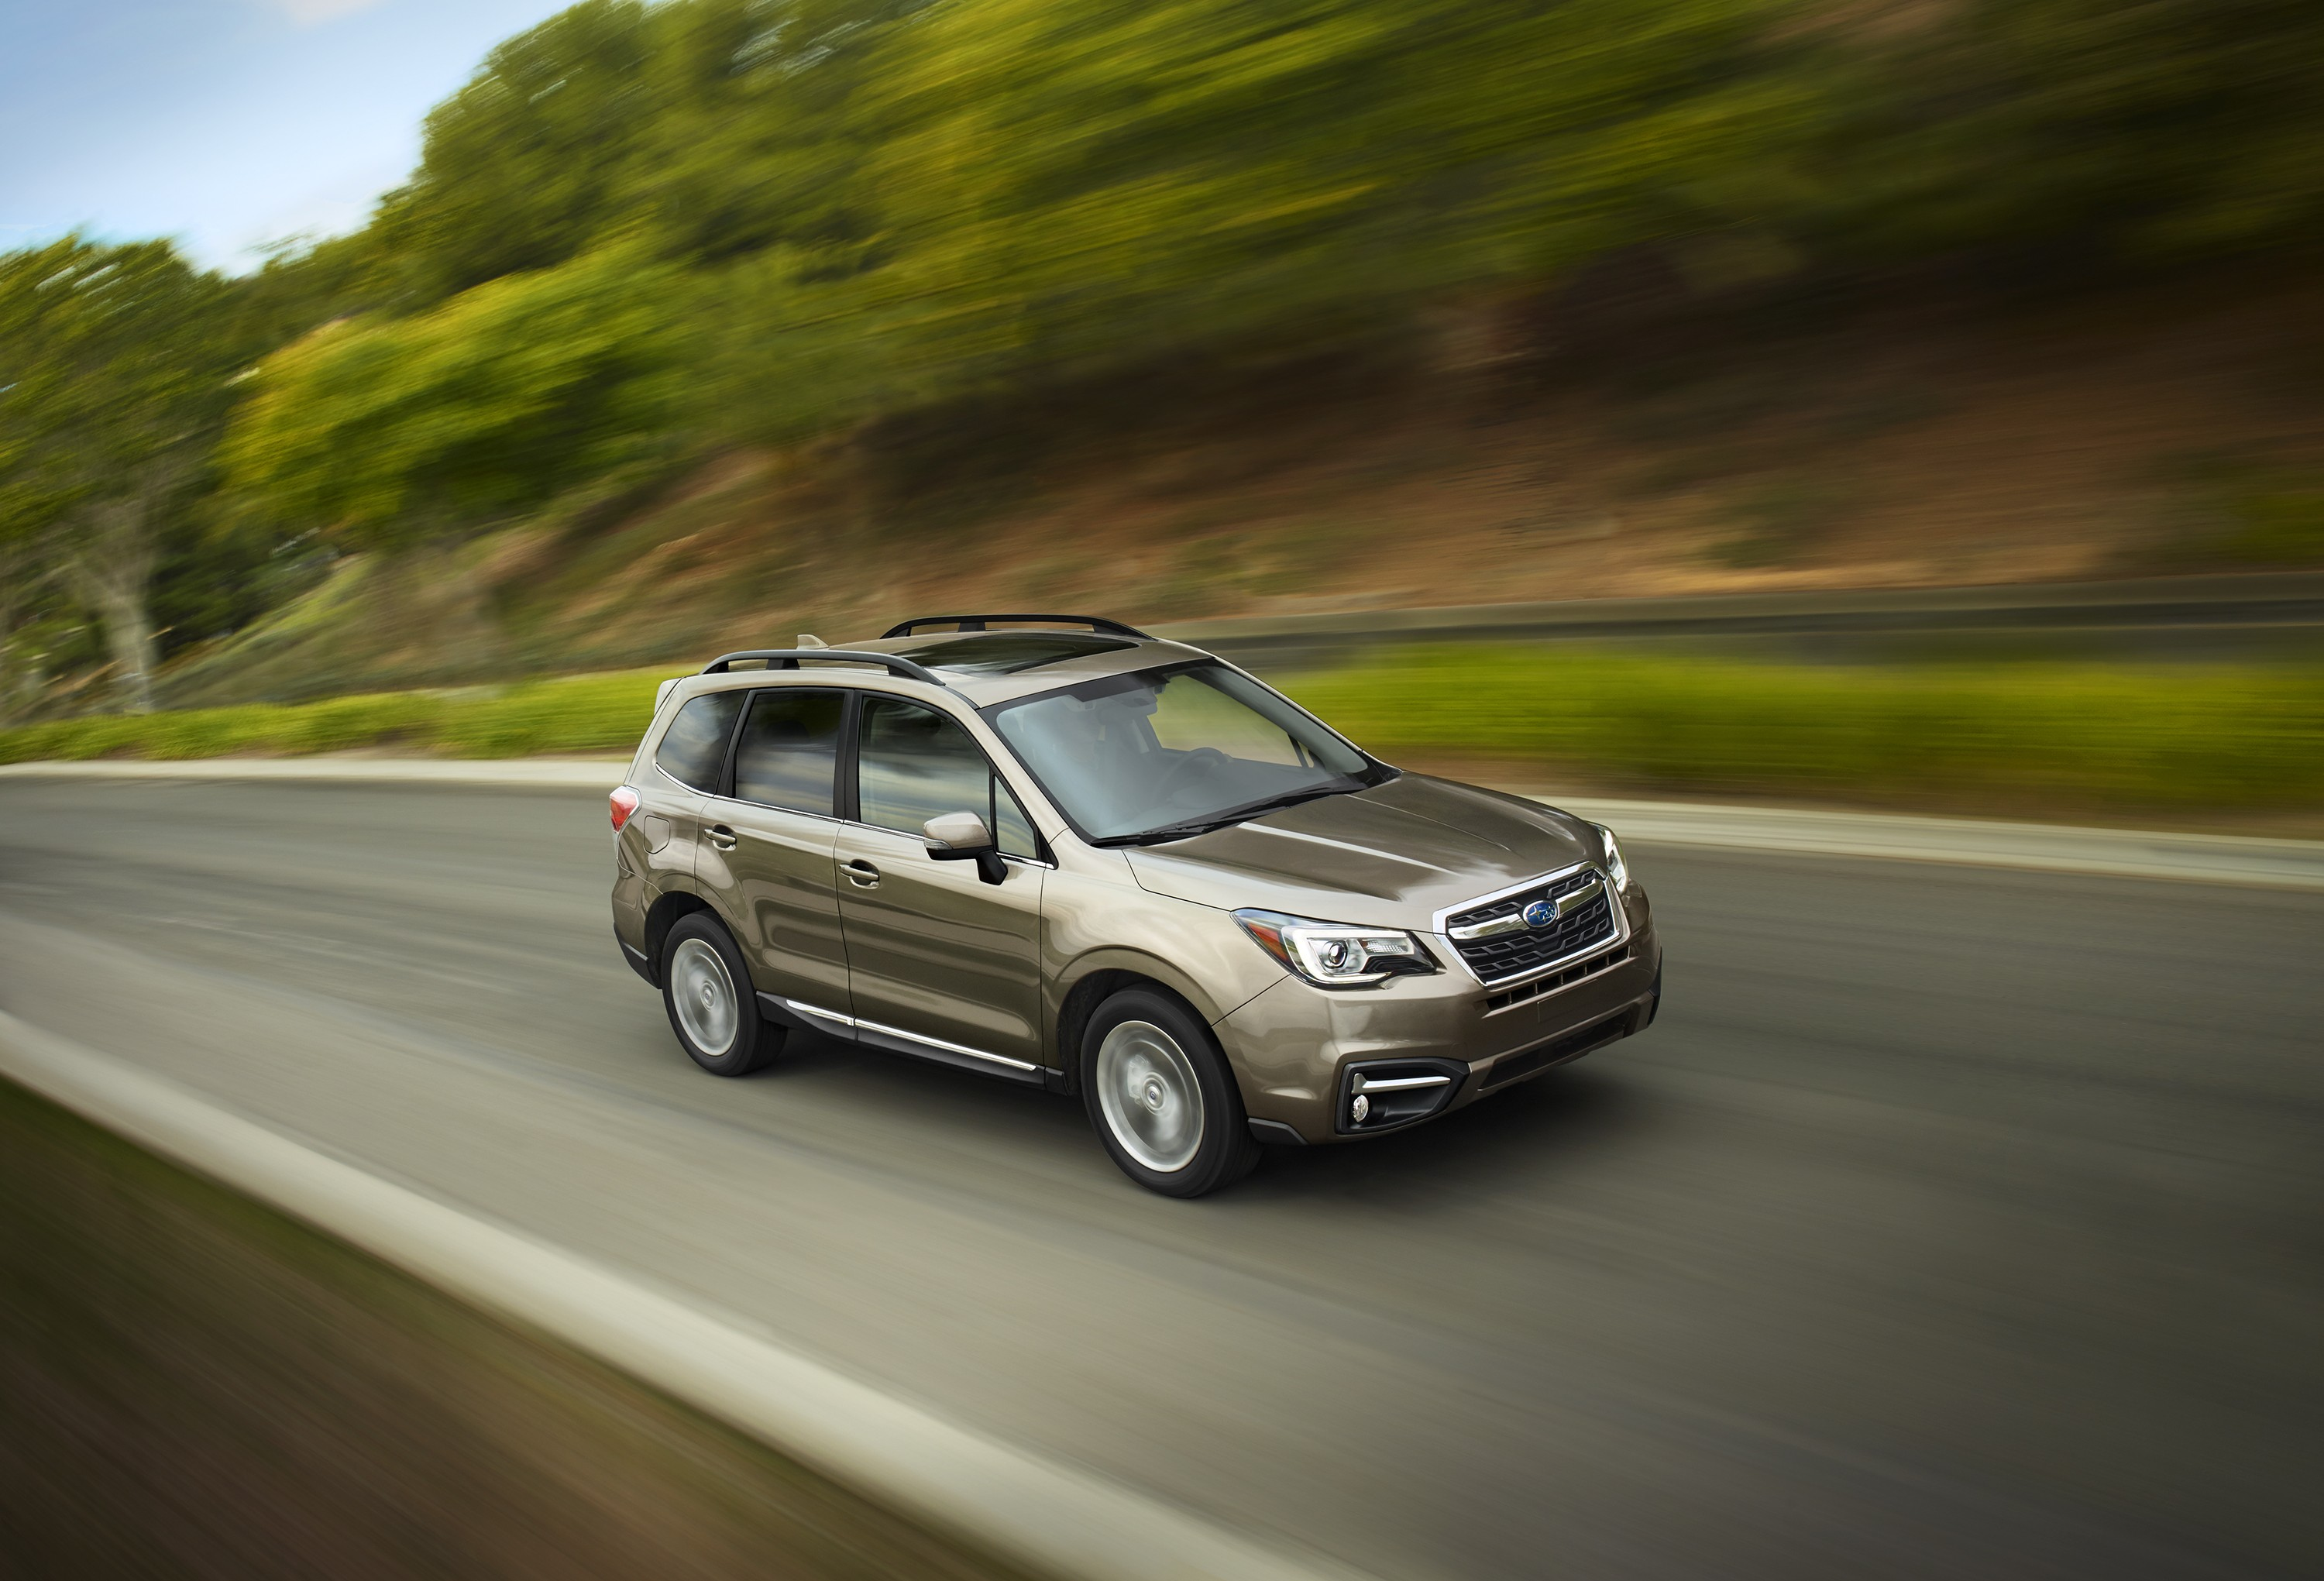 2017 subaru forester gets pricier more fuel efficient autoevolution. Black Bedroom Furniture Sets. Home Design Ideas